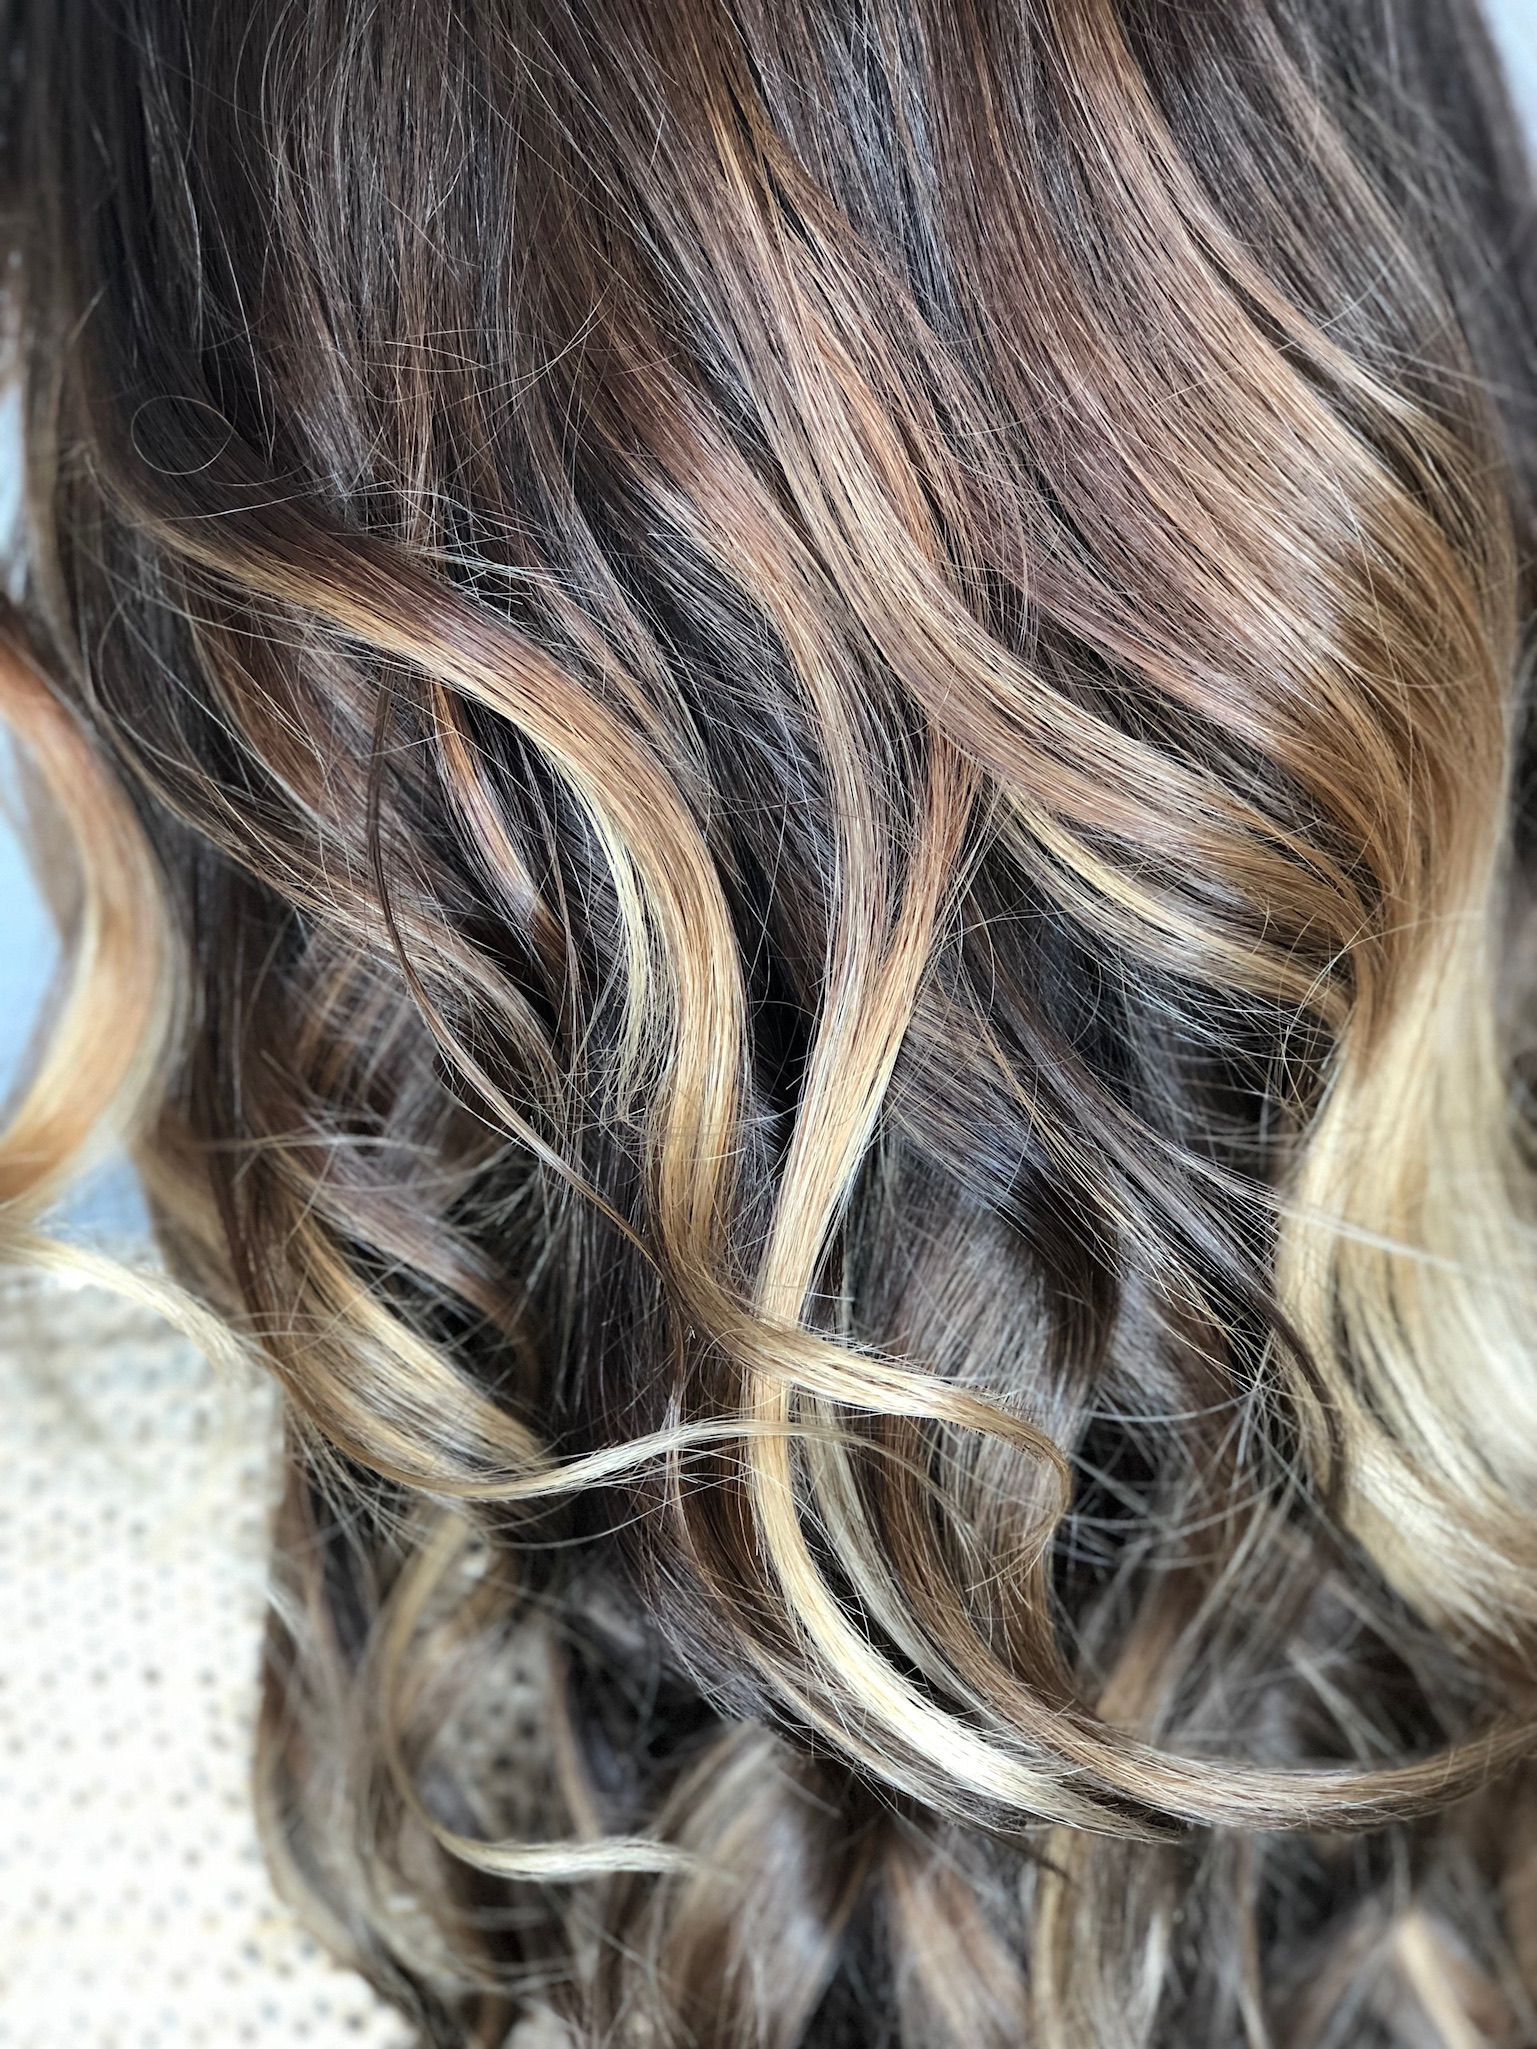 We love enhancing the health and beauty of our guest's hair!